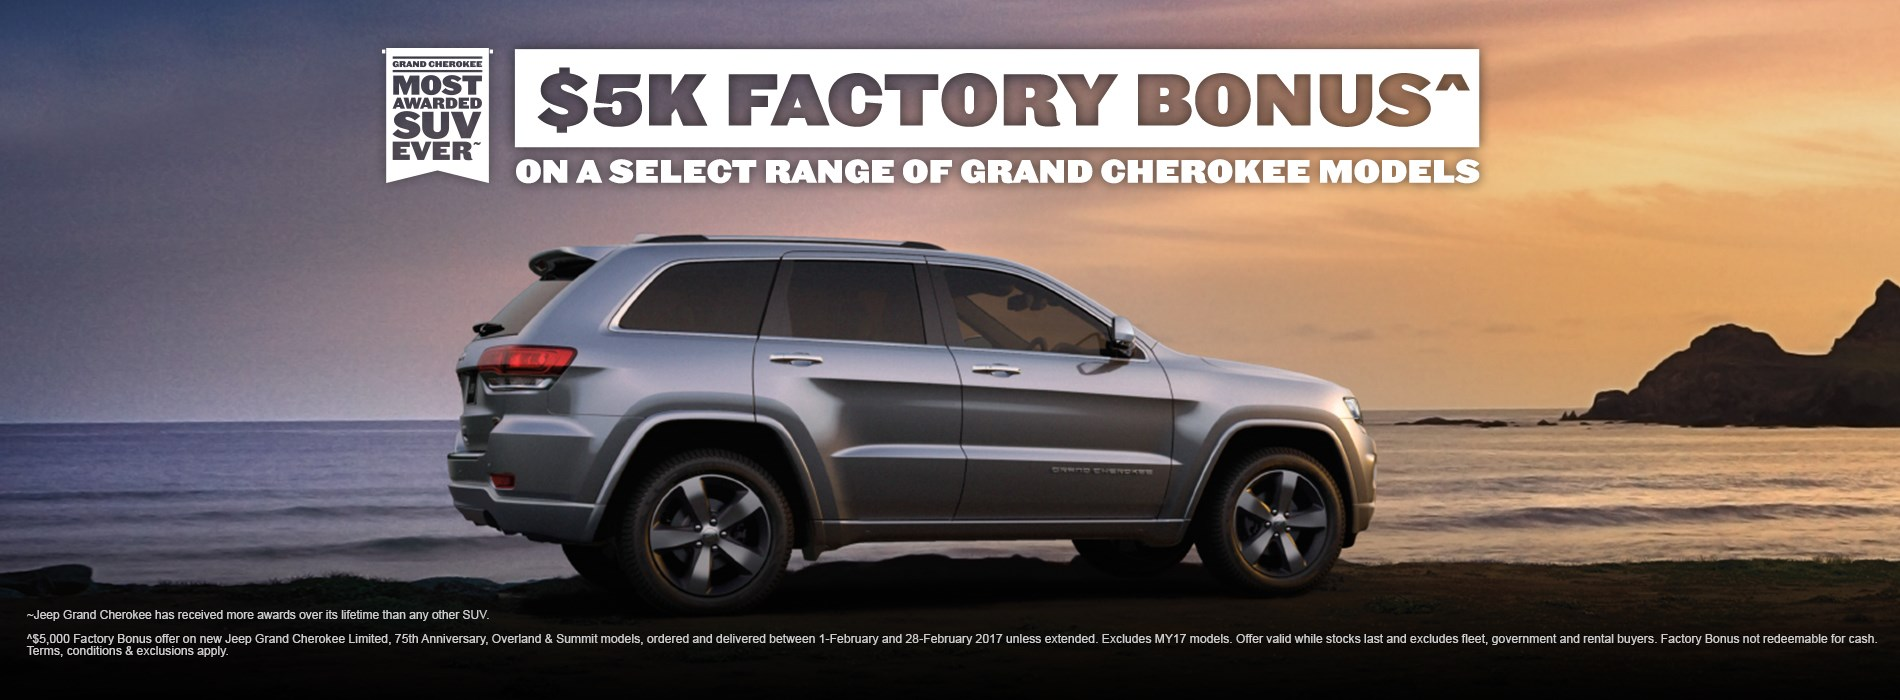 Jeep Grand Cherokee $5K Factory Bonus Offer